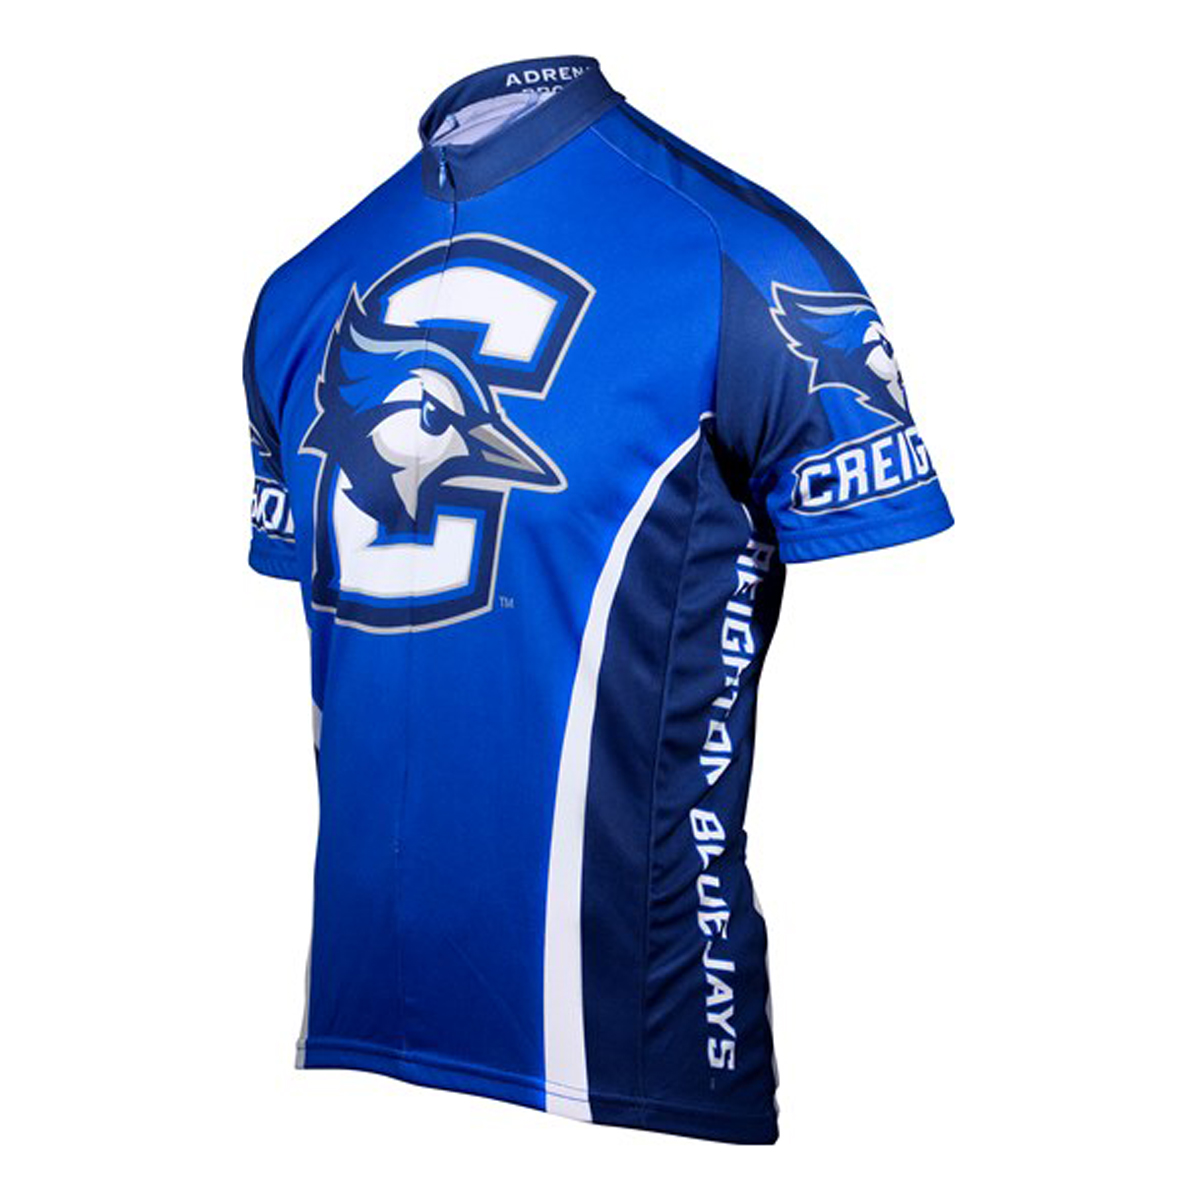 NCAA Men/'s Adrenaline Promotions Tennessee Volunteers Road Cycling Jersey